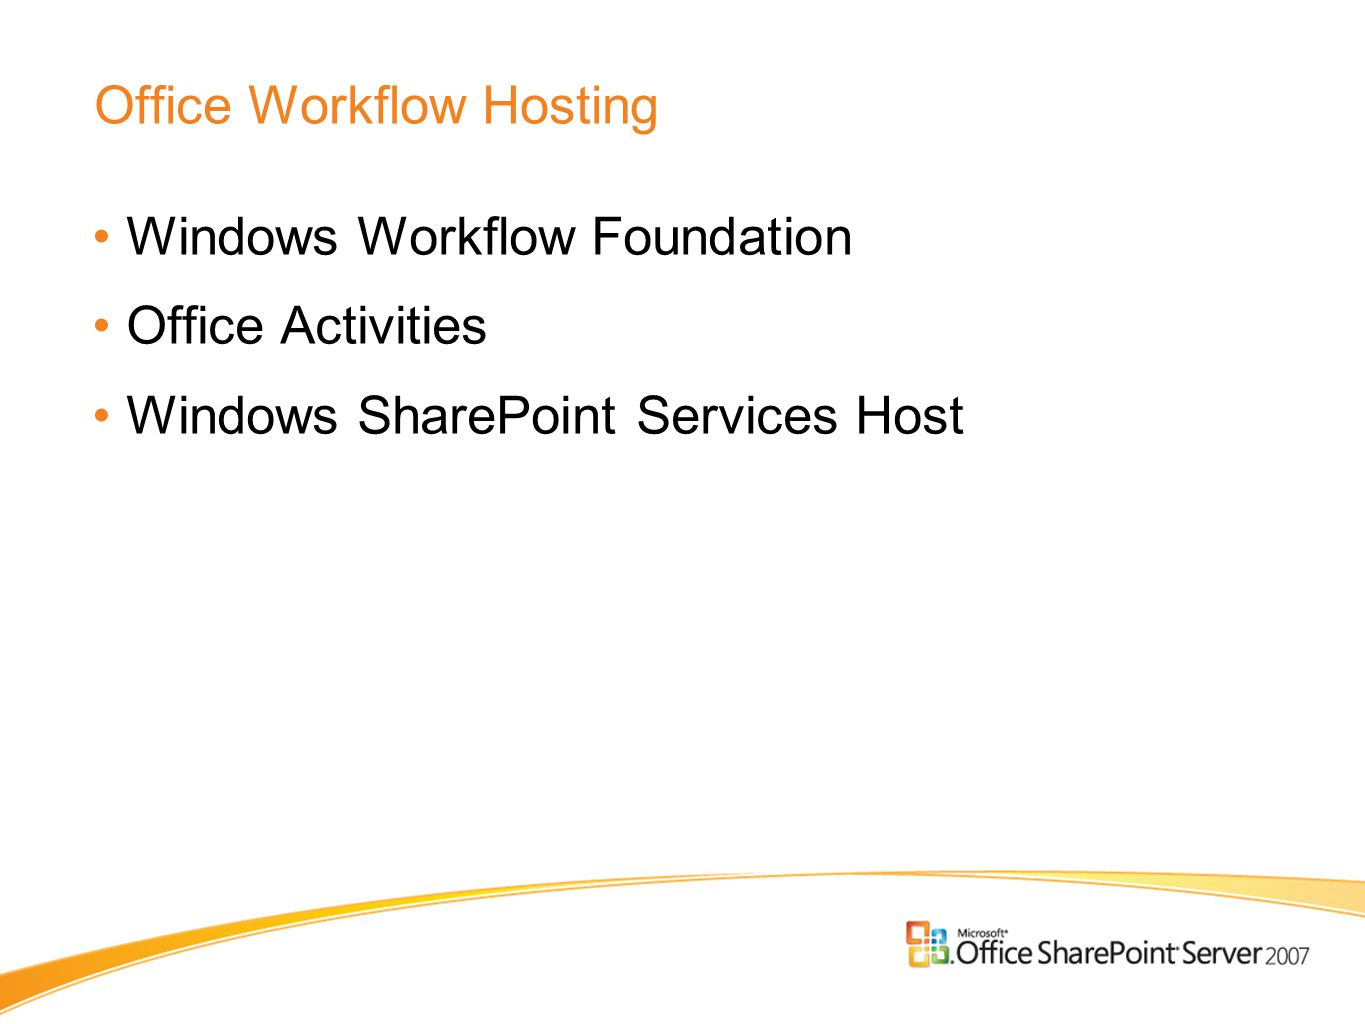 Office Workflow Hosting Windows Workflow Foundation Office Activities Windows SharePoint Services Host